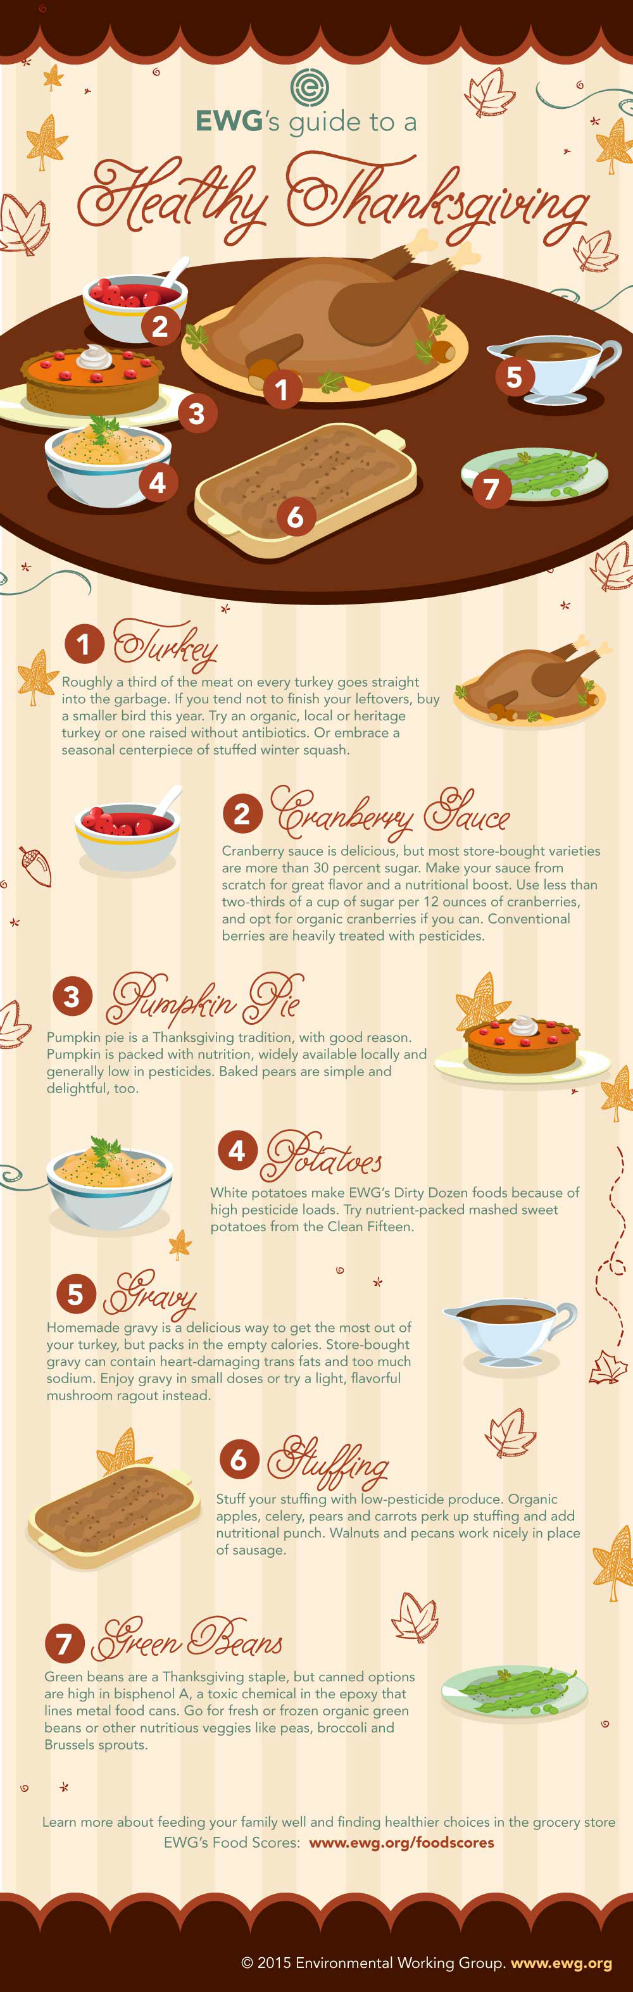 Eco-Friendly Guide To A Healthy Thanksgiving Meal